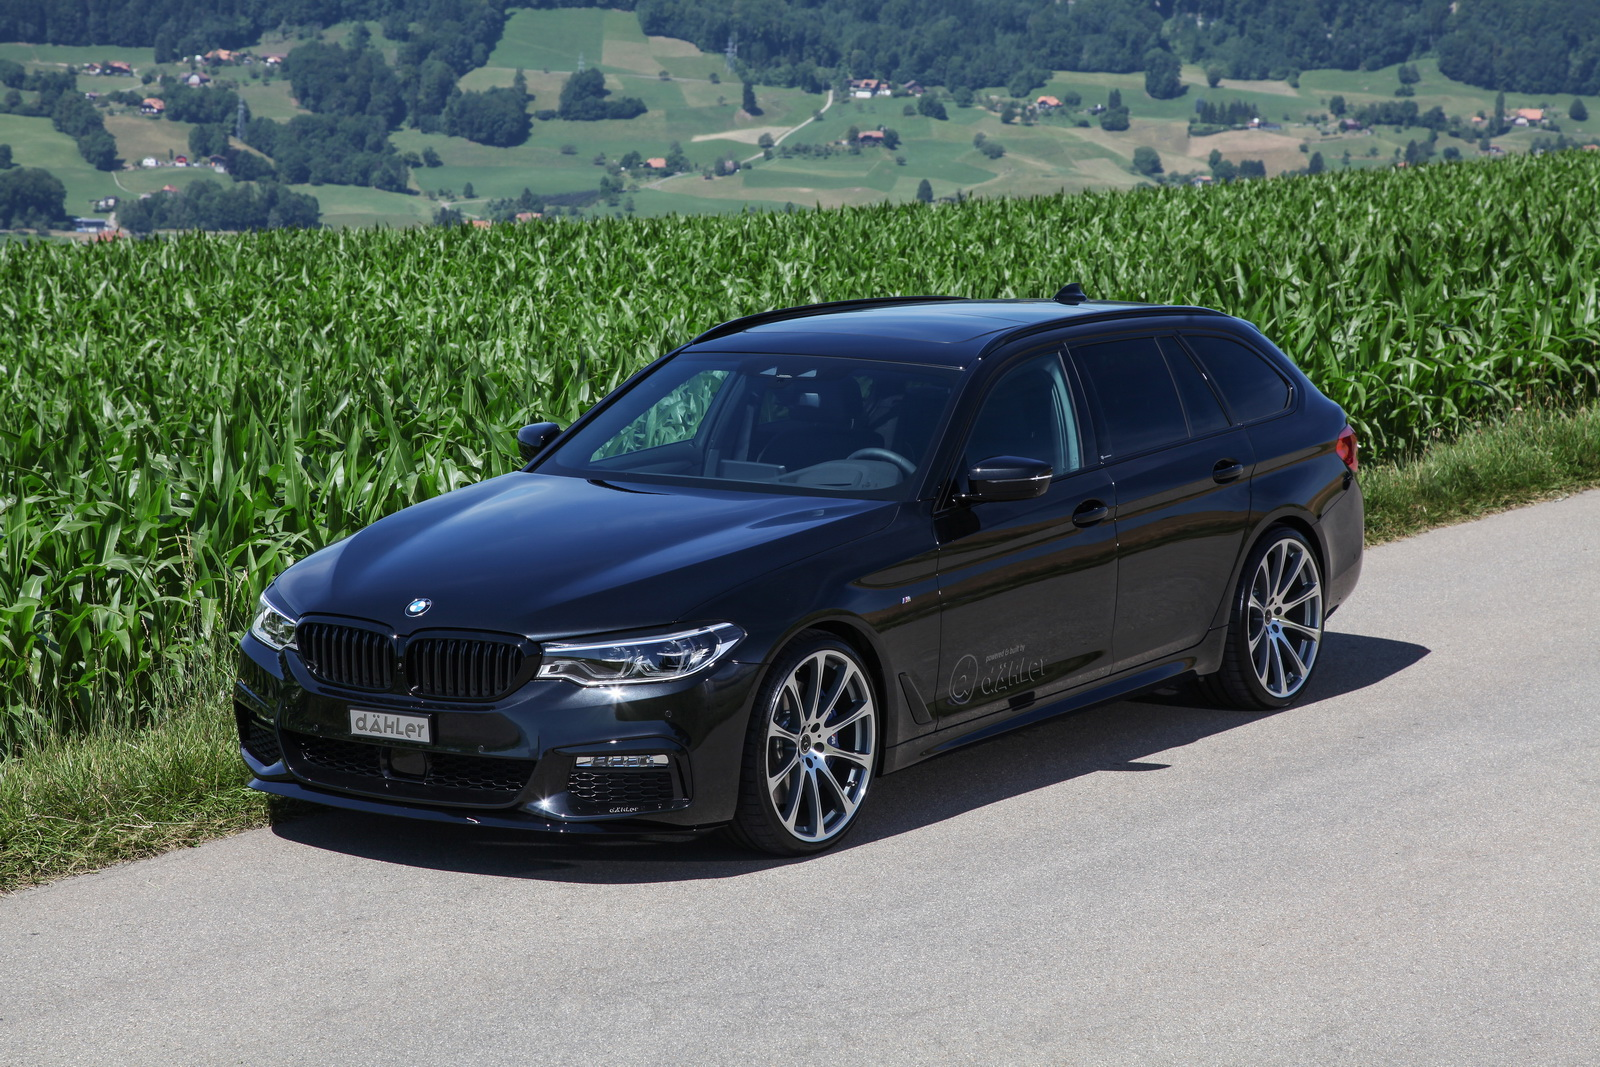 bmw 5 series touring g31 dahler tuning 18